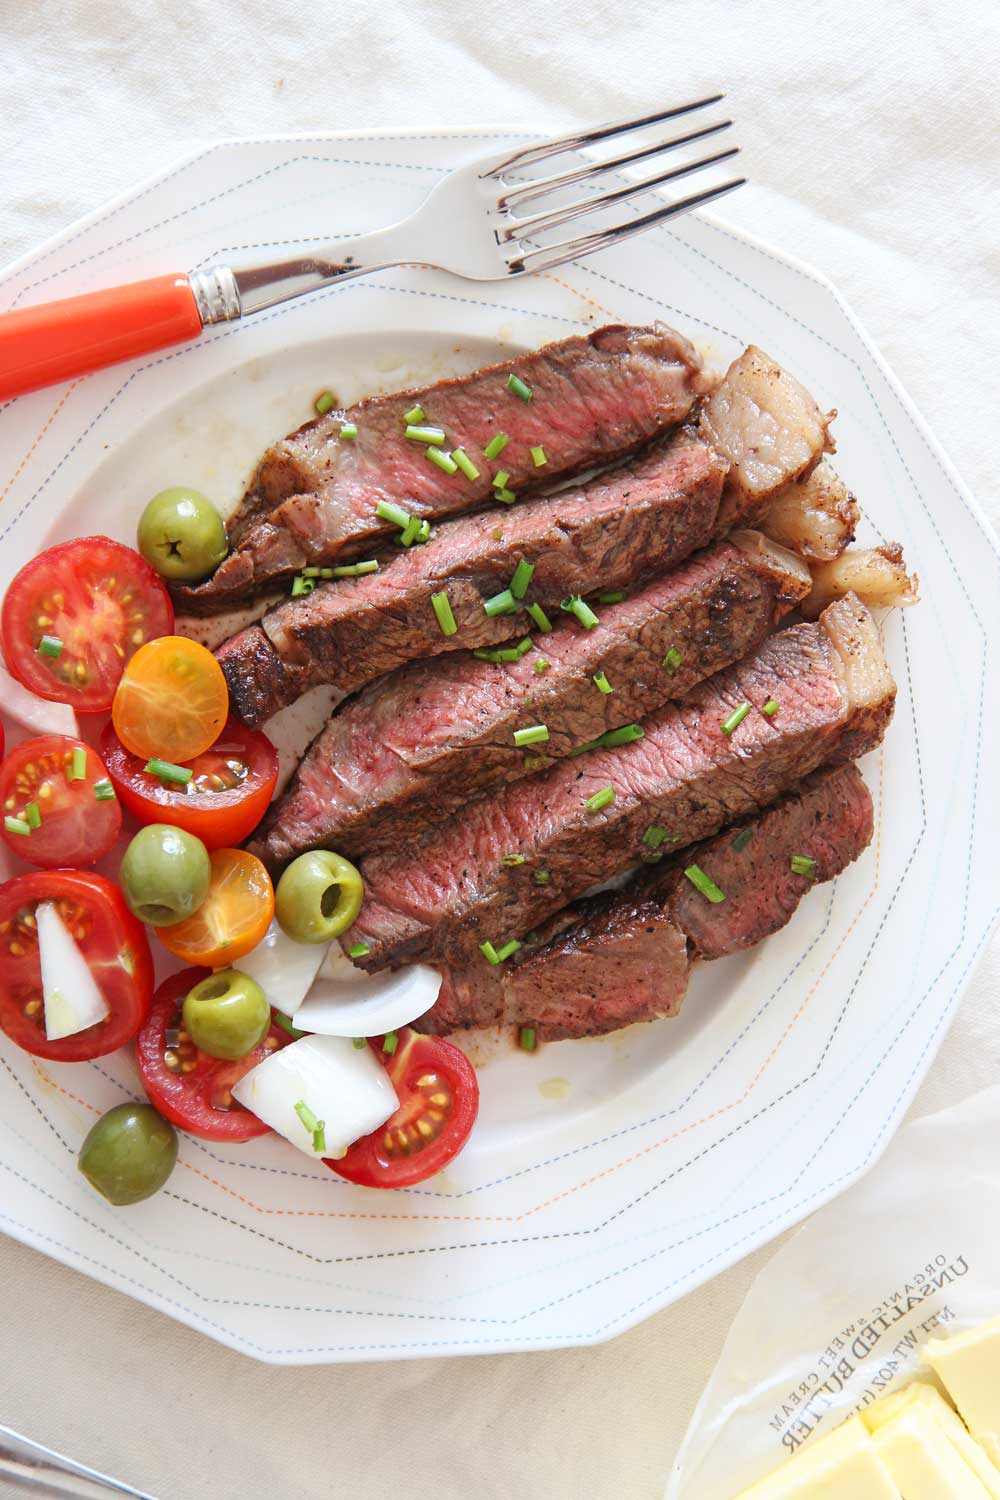 How to Reverse Sear a Steak. Its the easiest way to cook a steak. You can use a ribeye, NY strip, or any steak. You just need a sheet pan with a wire rack, cast iron pan, and butter. Happy steak making! www.ChopHappy.com #howtoreversesearasteak #reversesearedsteak